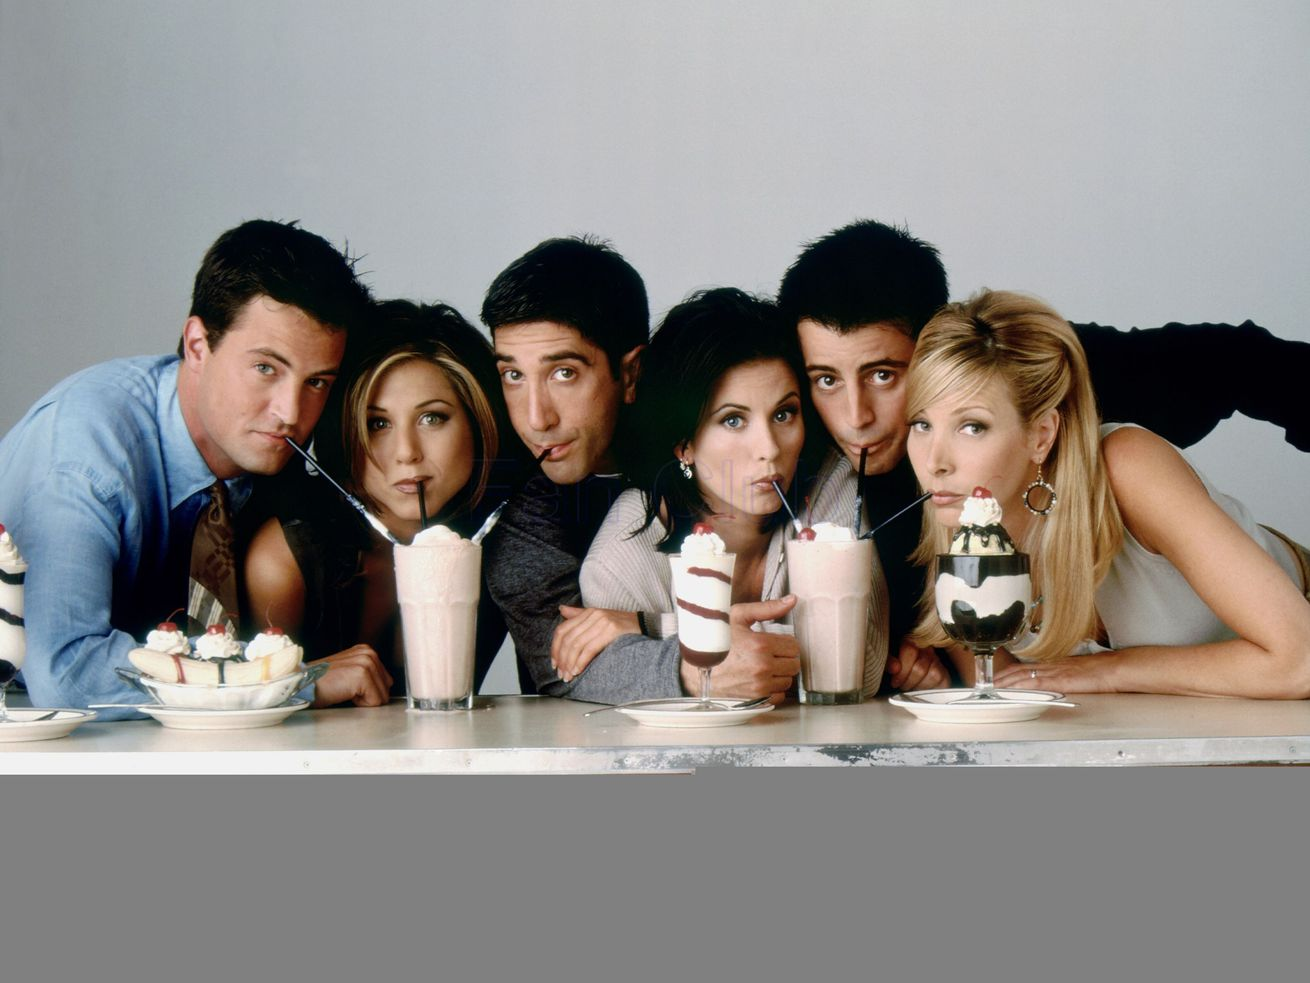 """The cast of """"Friends"""" leaning forward and sipping on milkshakes sitting on a table."""